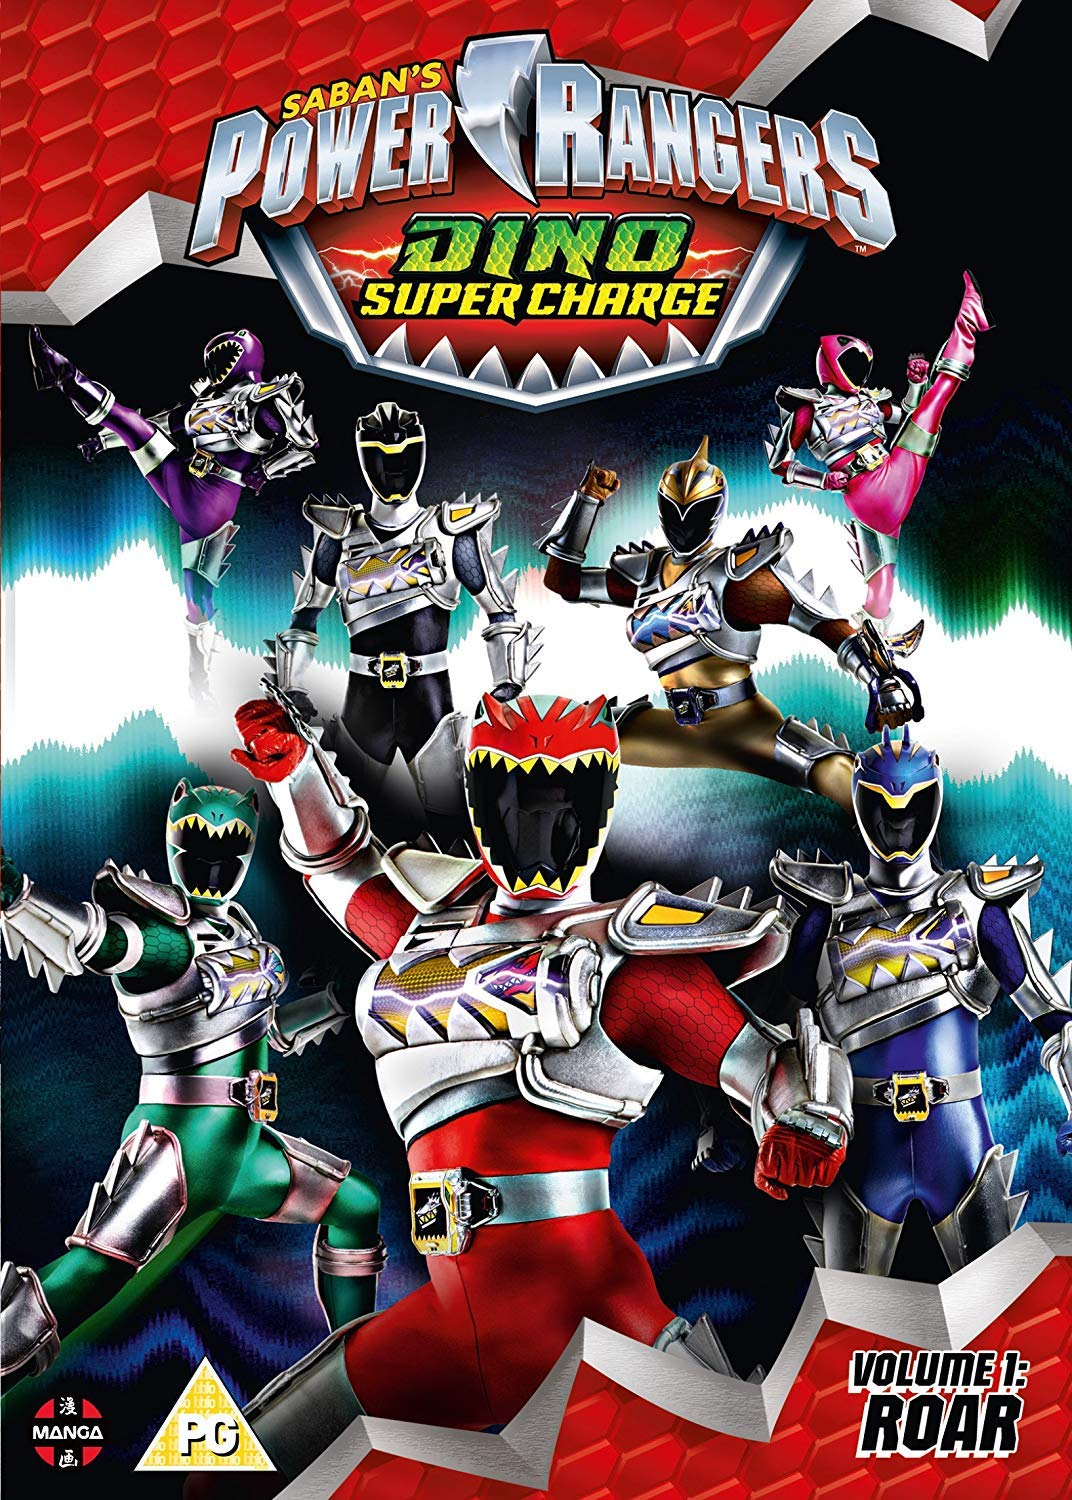 - Amazon.com: Power Rangers: Dino Super Charge Vol 1 - Roar